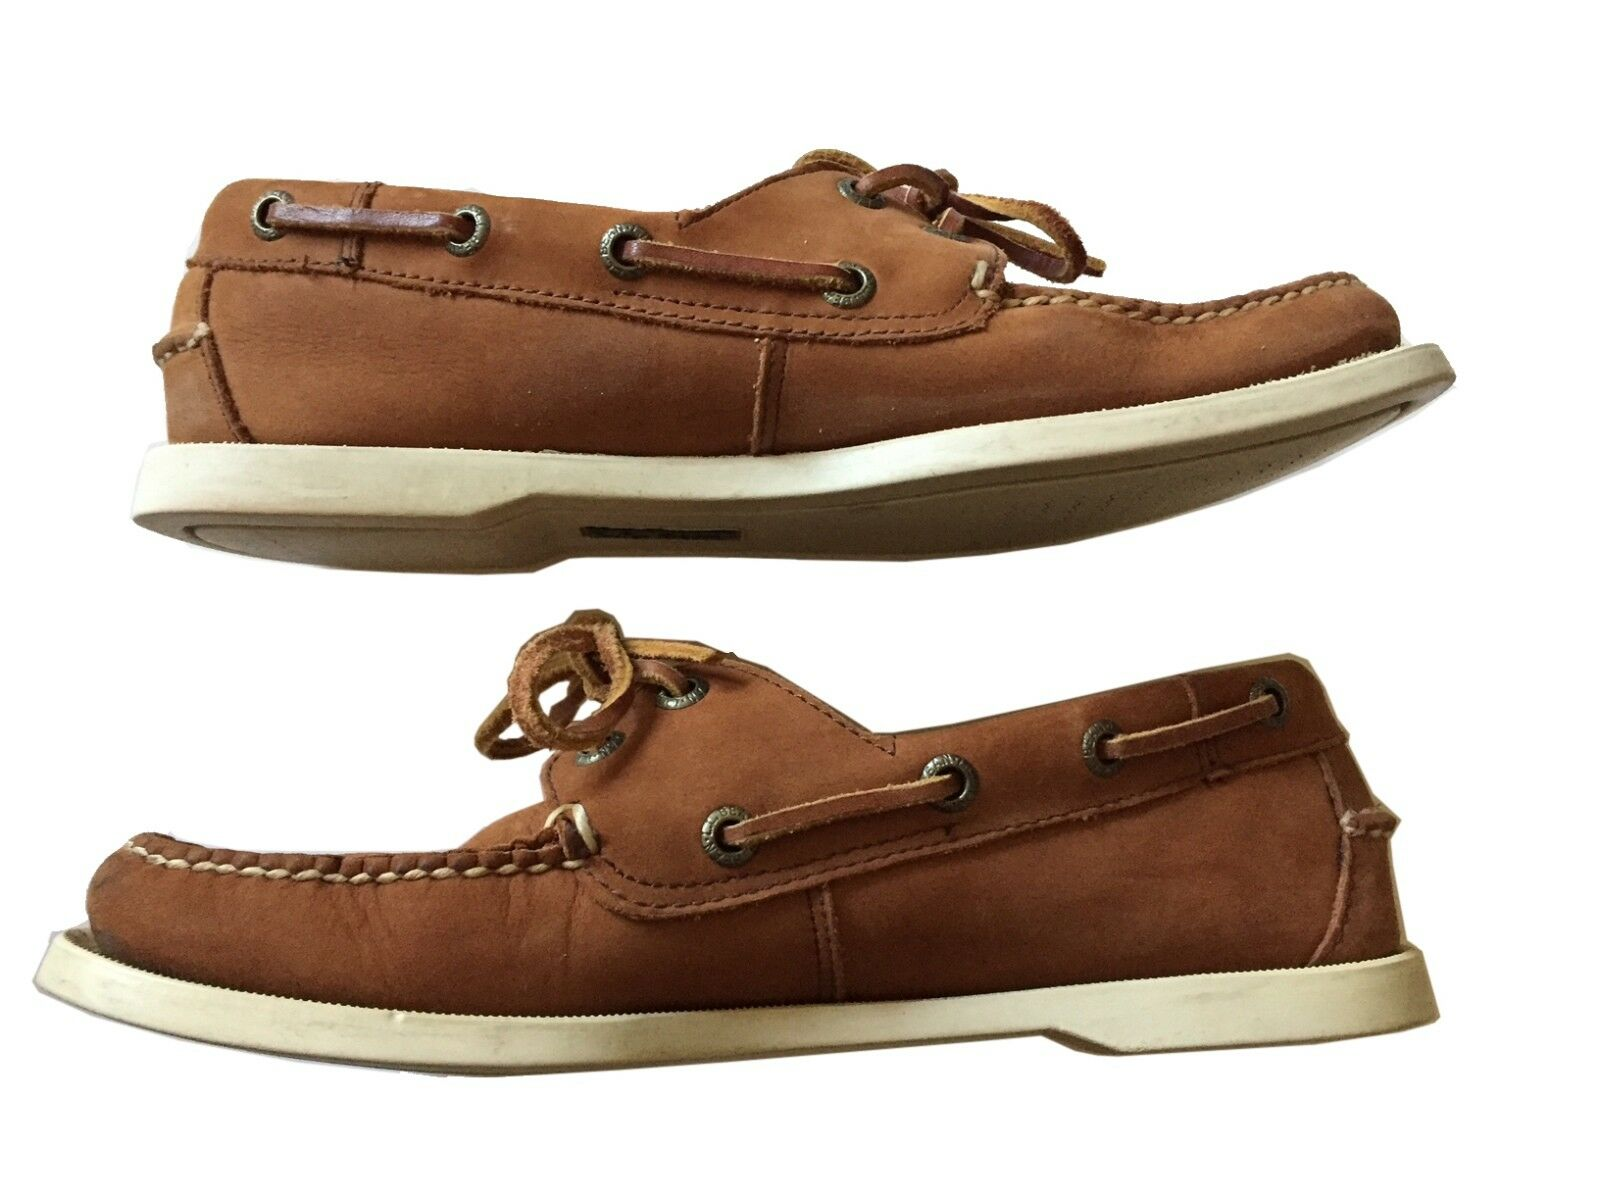 L.L. BEAN Women's Casco Bay Boat Moccasins Brown Nubuck Lace-Up Deck shoes Sz 7M